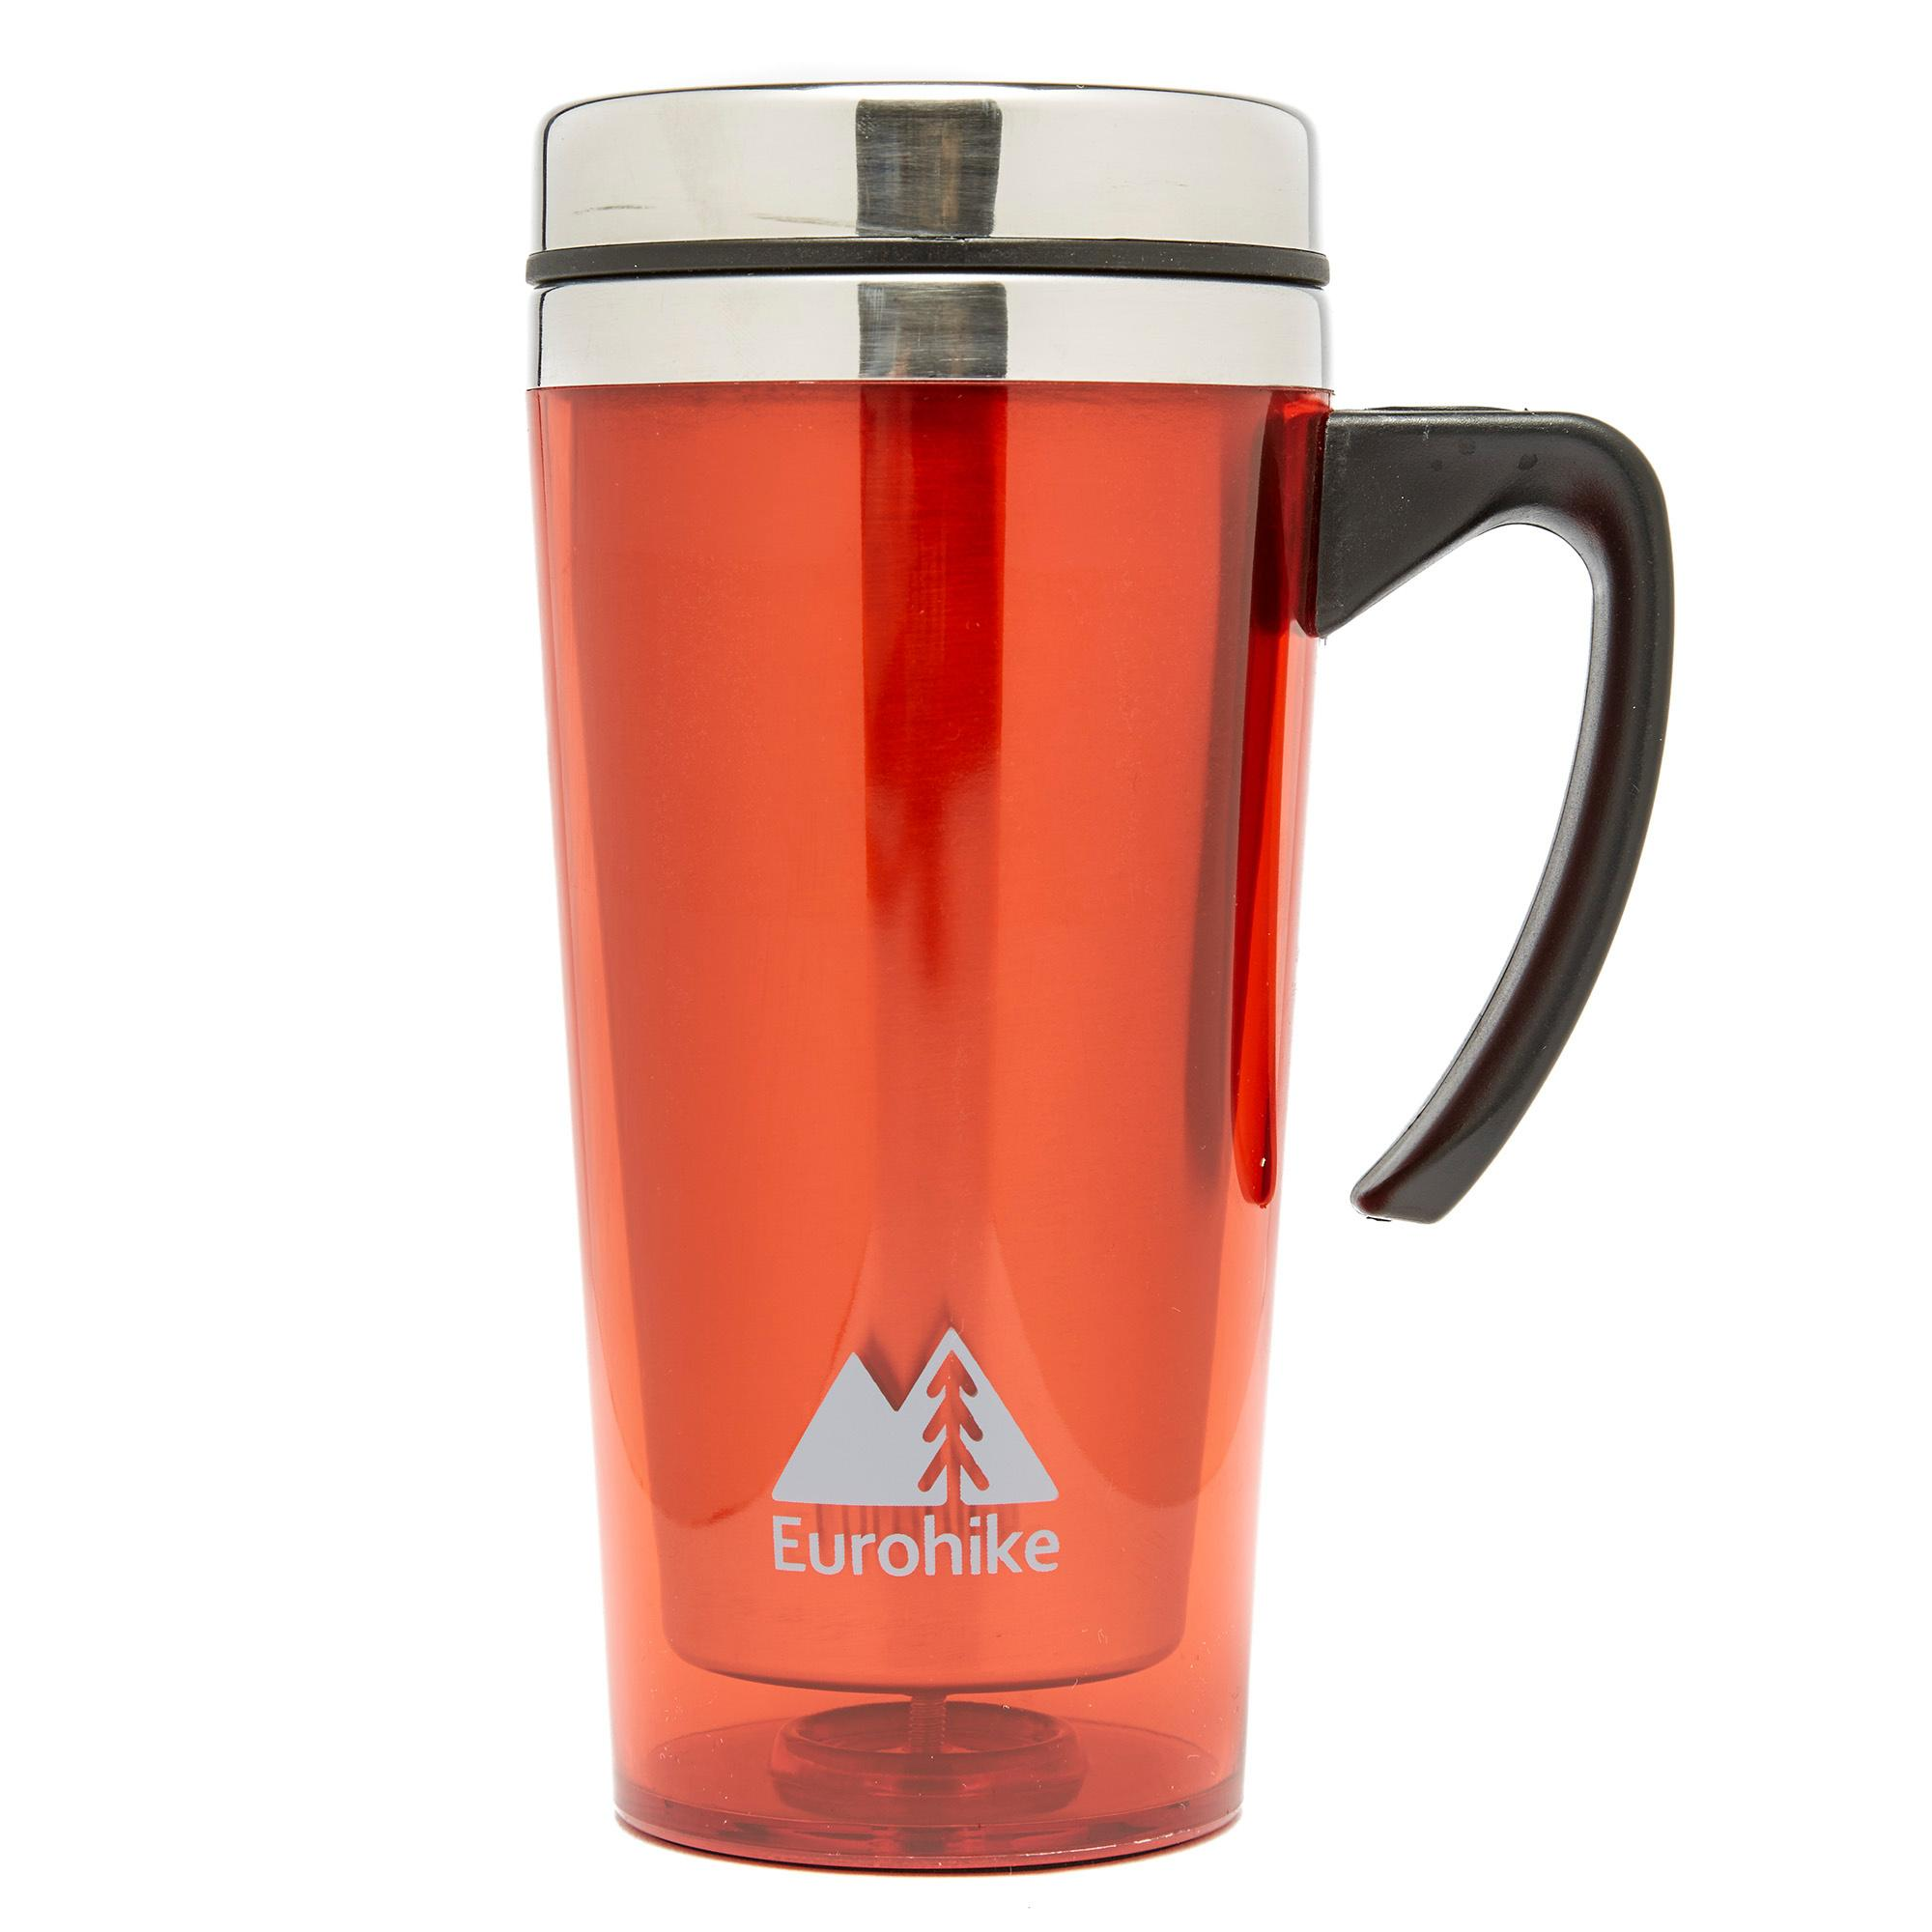 Eurohike Tall Insulated Mug - Red, Red